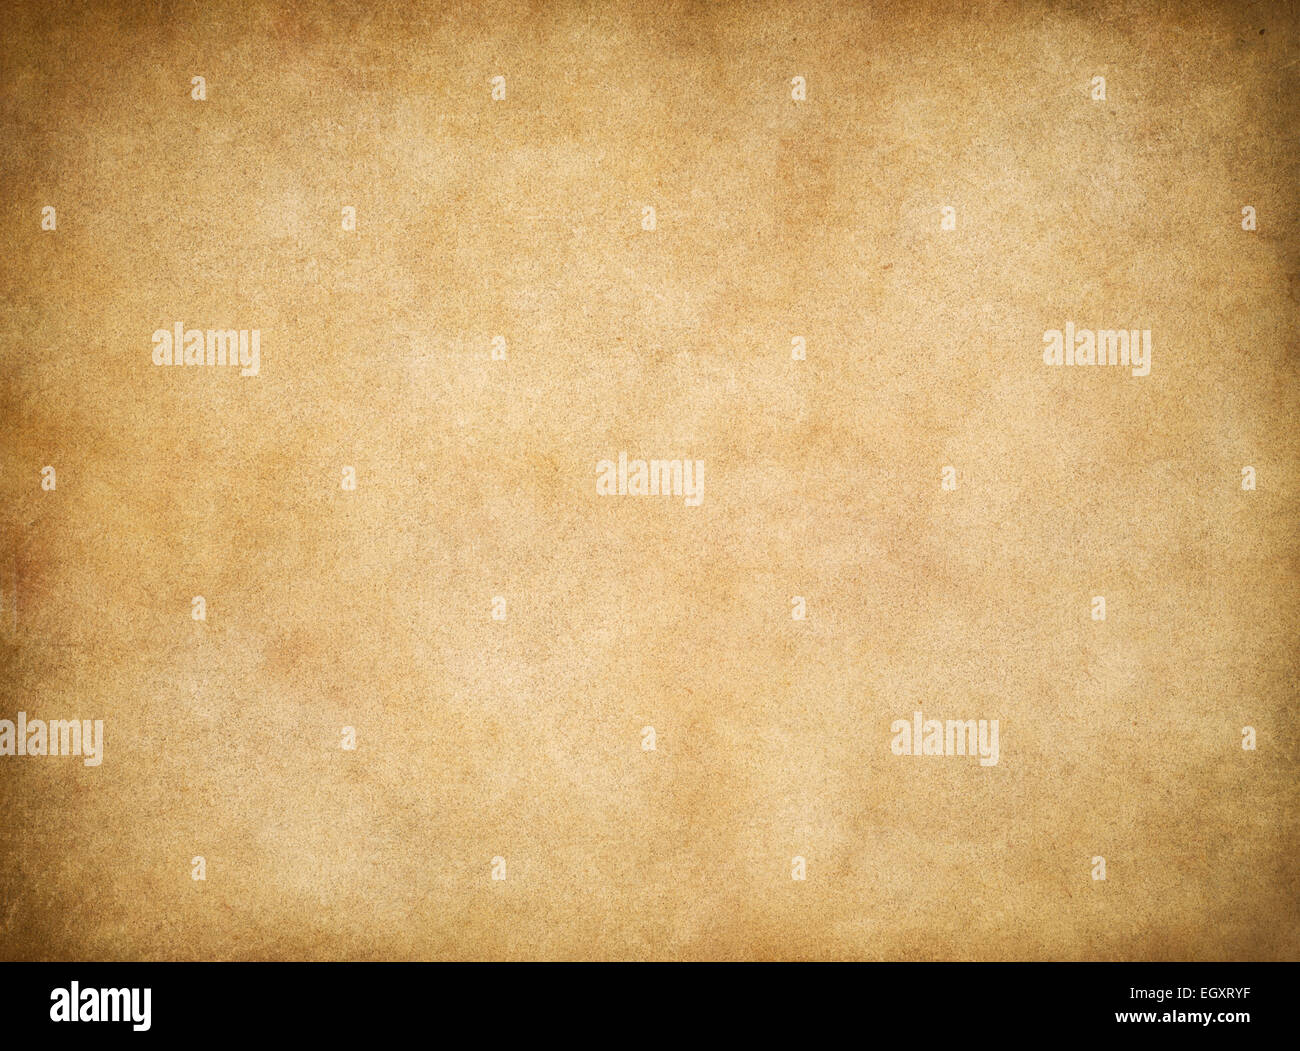 Vintage aged worn paper texture background - Stock Image